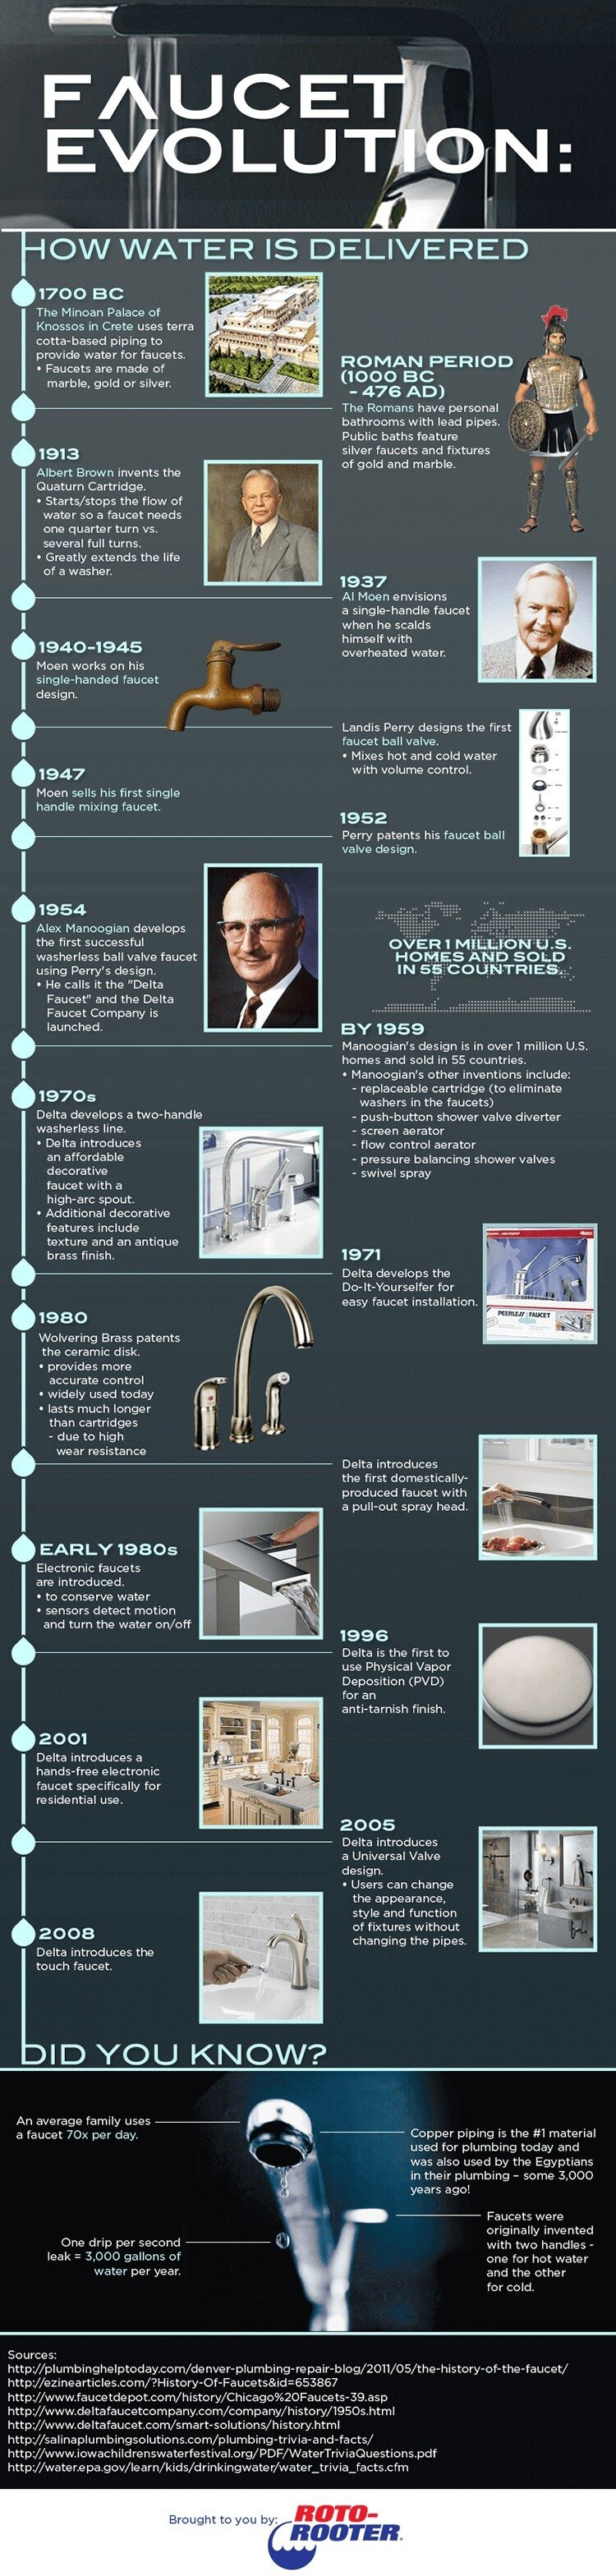 faucet history